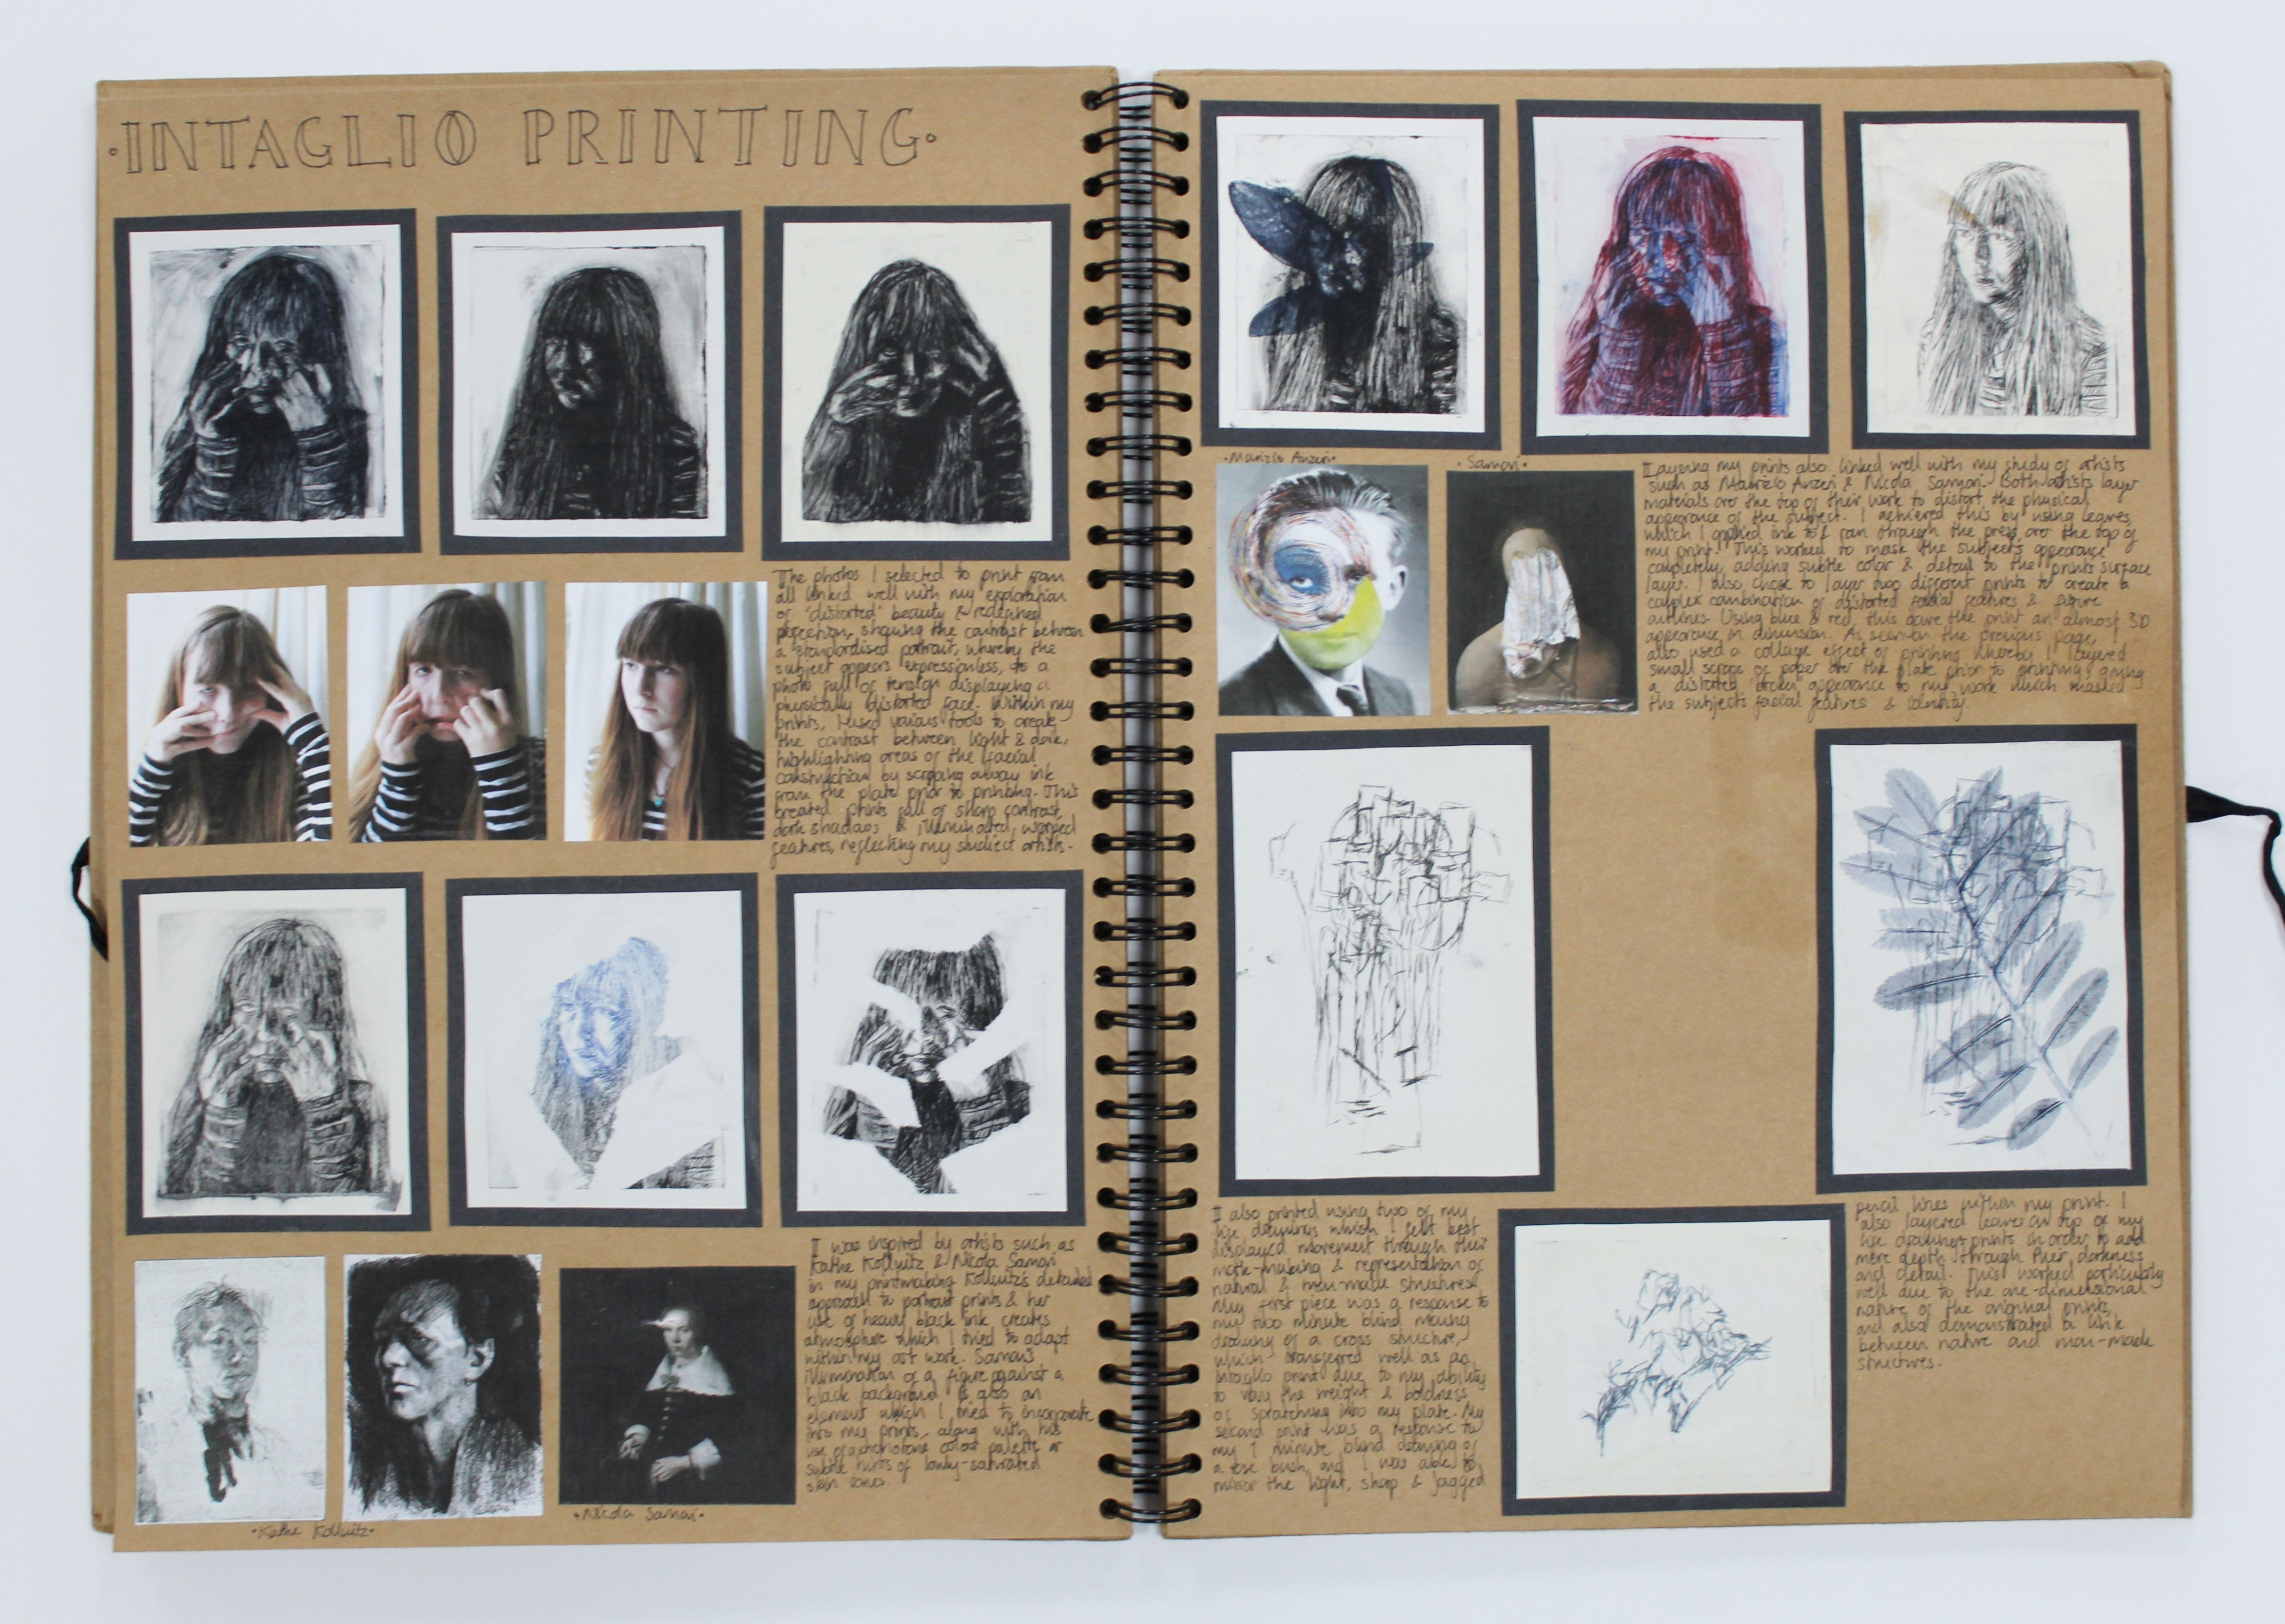 A2 Fine Art A3 Brown Sketchbook Intaglio Printing Cswk Theme Flaws Perfections Ideals And Compromises Thomas Rot Photography Sketchbook Sketch Book Art